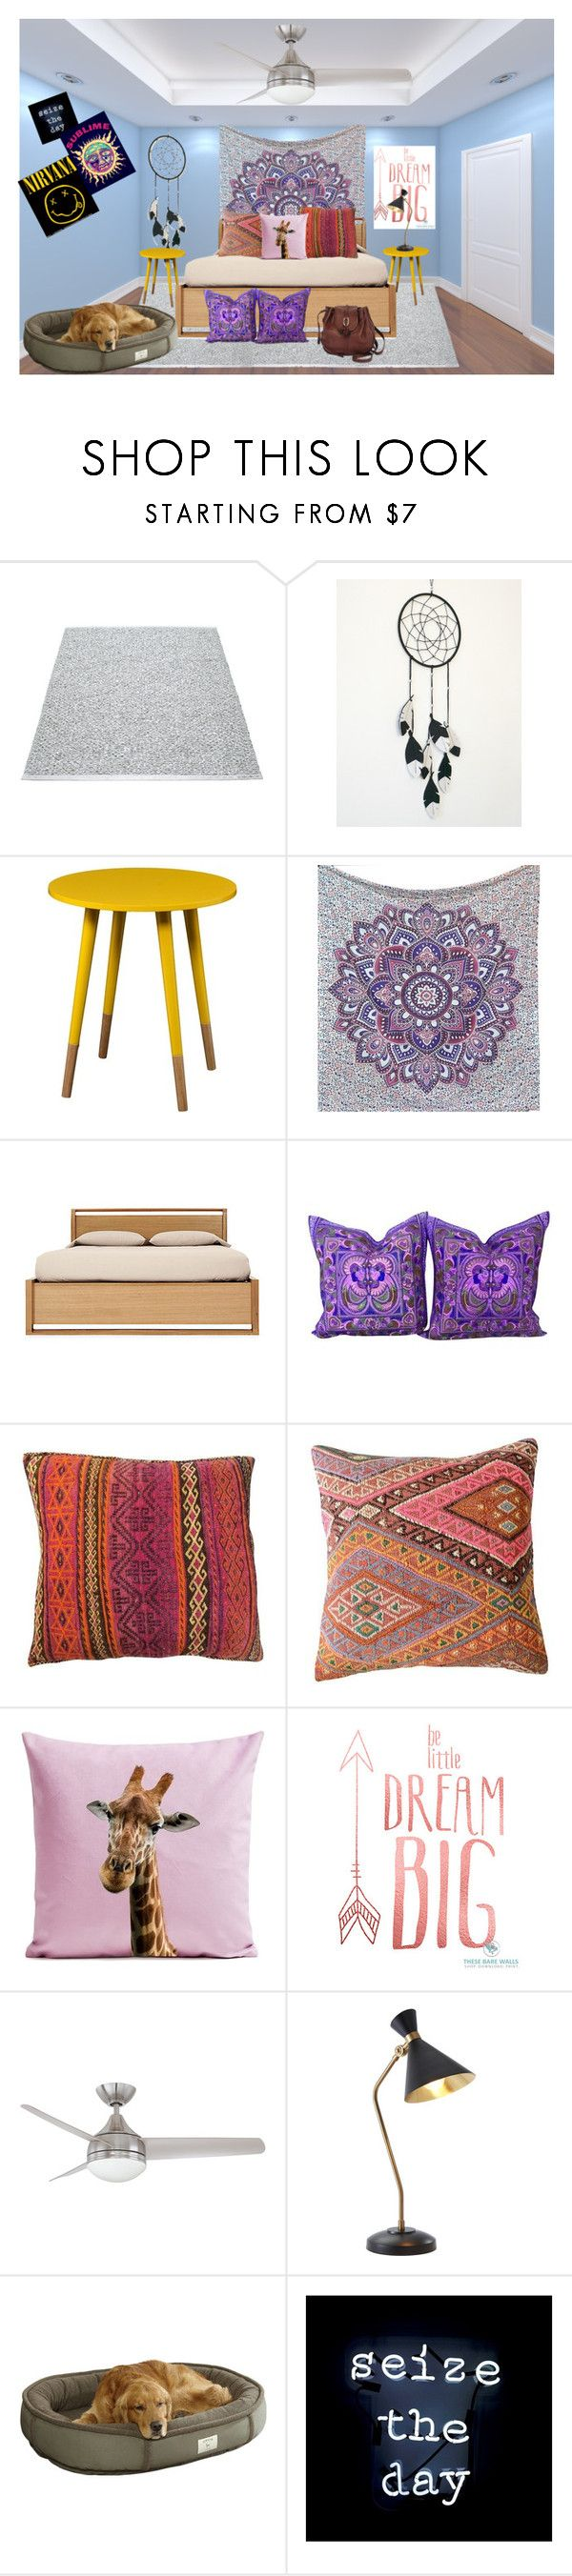 17 best ideas about indie bedroom on pinterest indie for Indie home decor